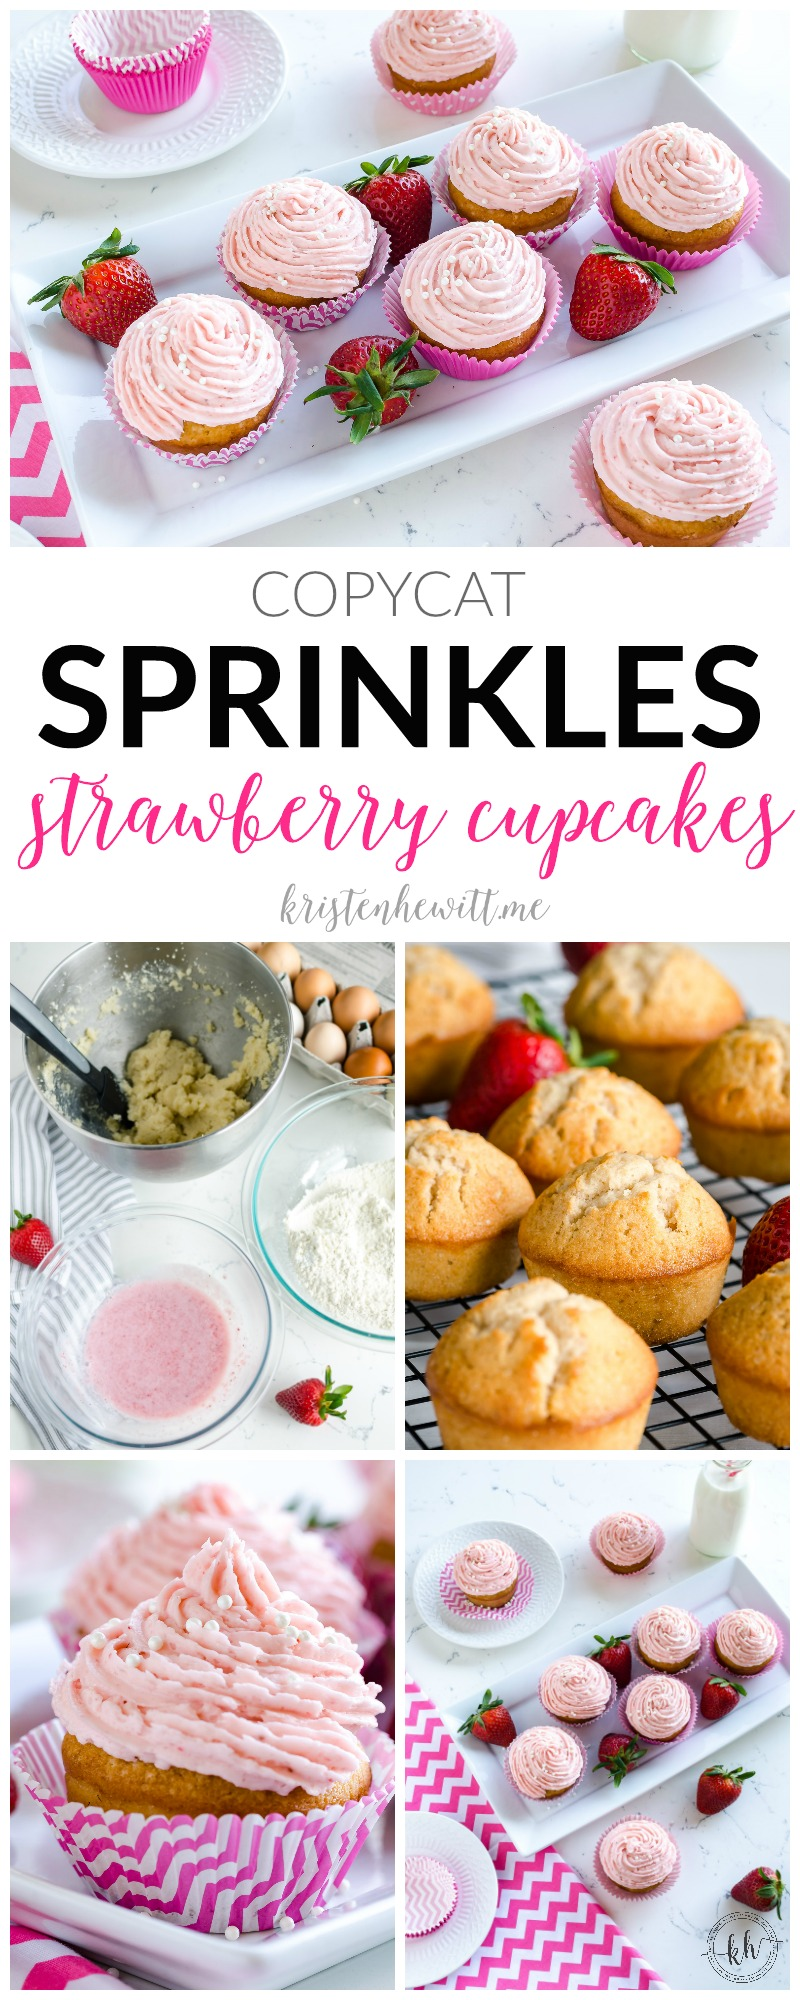 Looking for a decadent cupcake recipe using strawberries? Try this copycat recipe for Sprinkles Strawberry Cupcakes! The best cupcake you'll ever try!